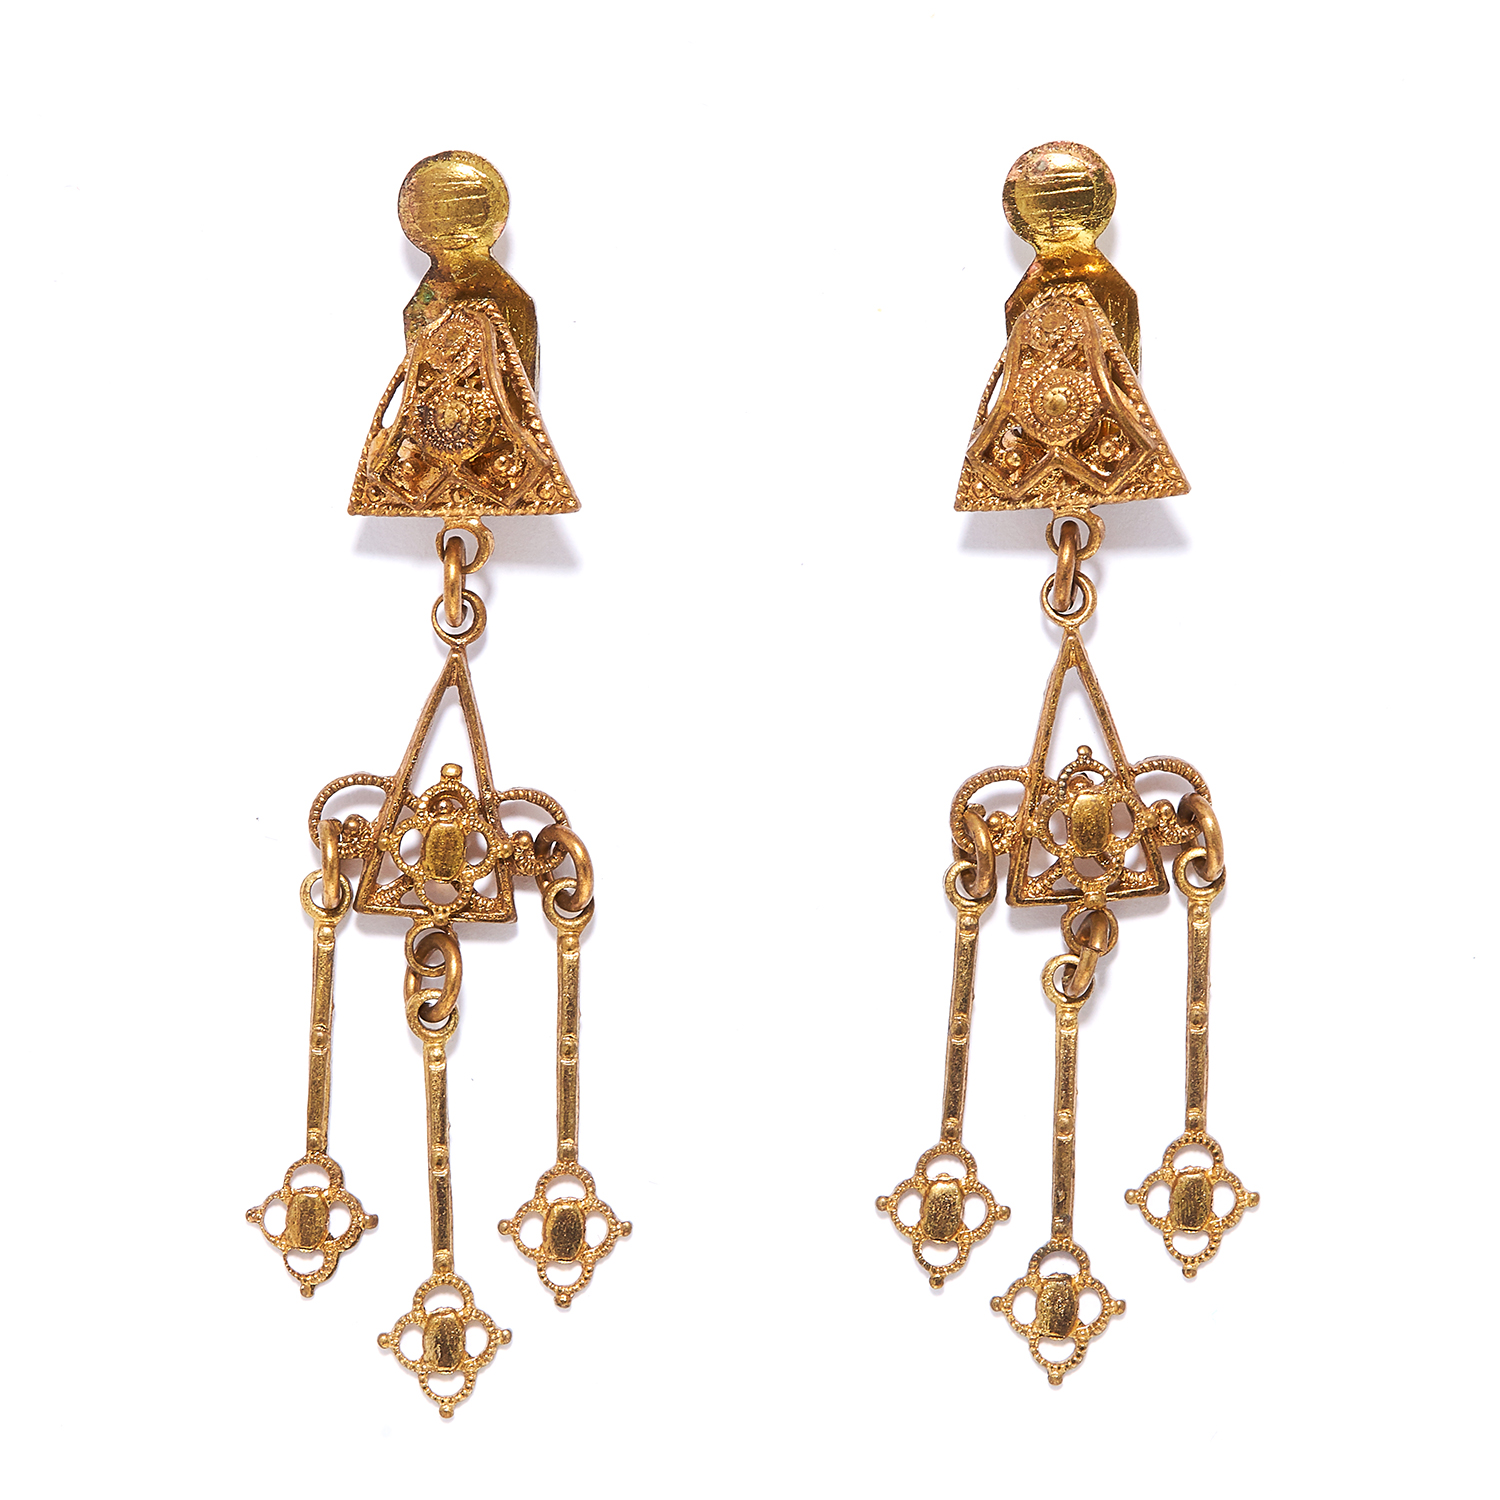 A PAIR OF GOLD EARRINGS in scrolling design, each suspending three gold tassels, unmarked, 4.31g.